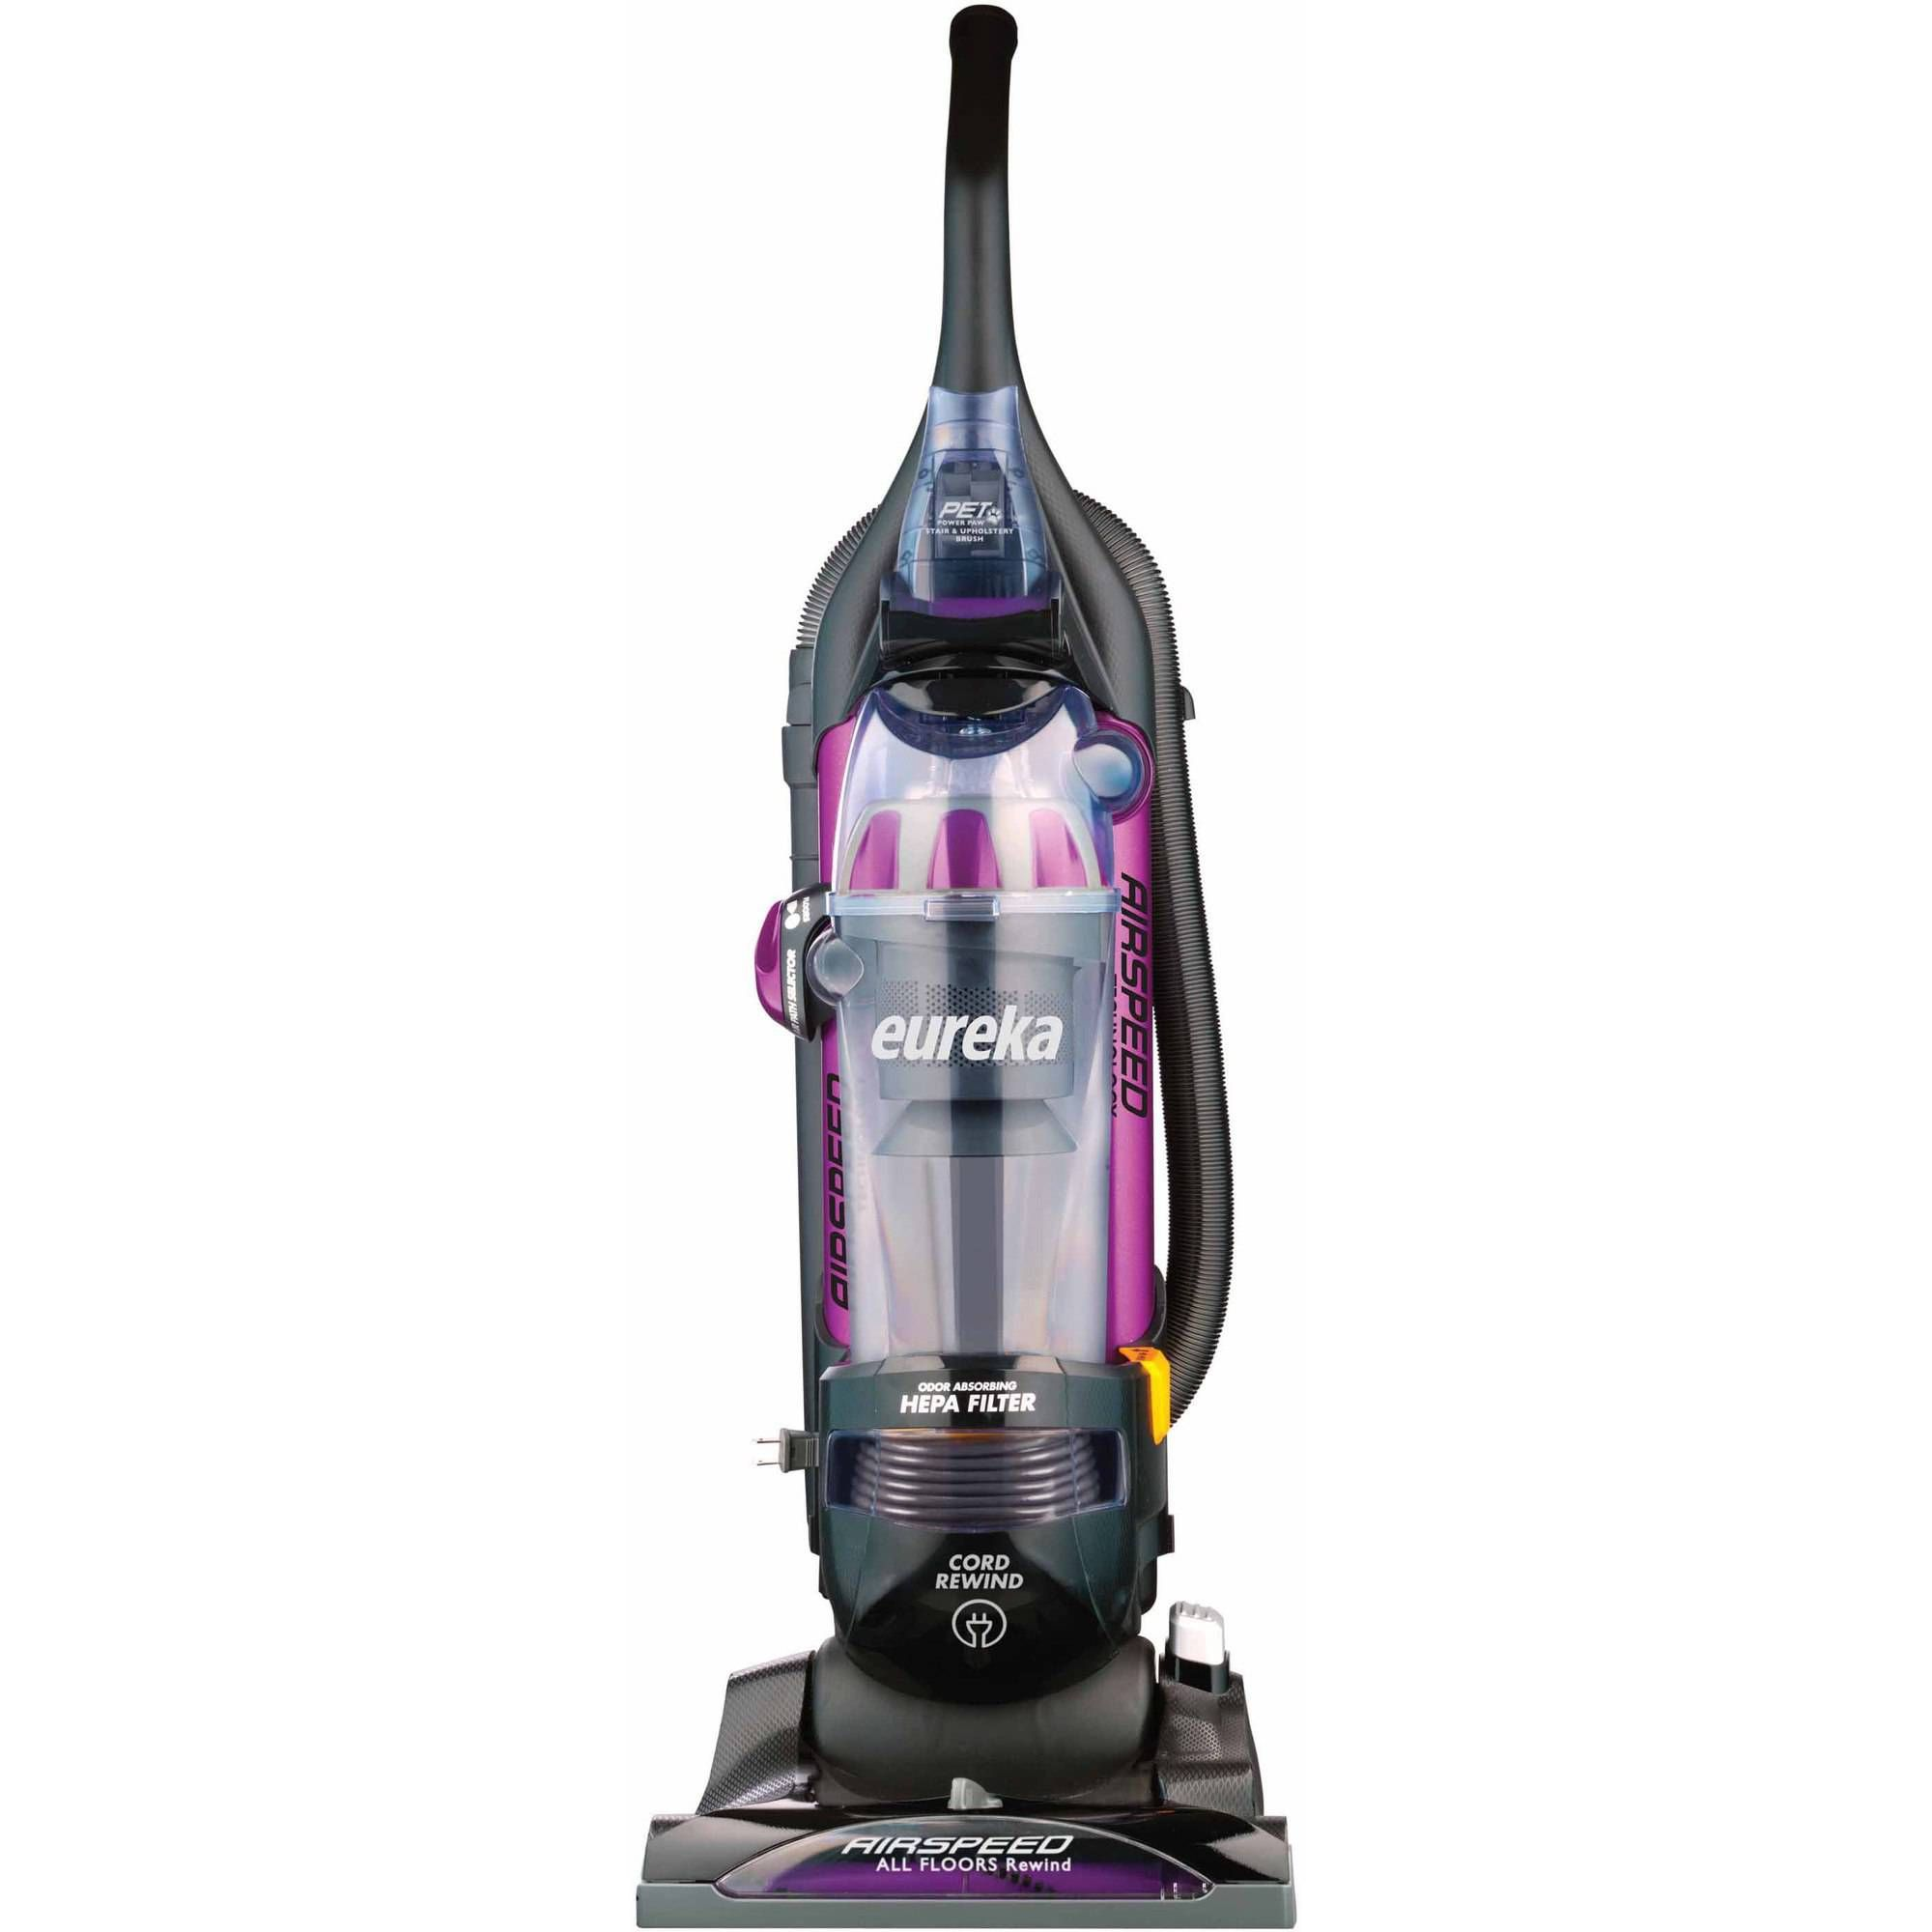 Refurbished Eureka All Floors Rewind Pet Bagless Upright Vacuum, AS1061A Sale